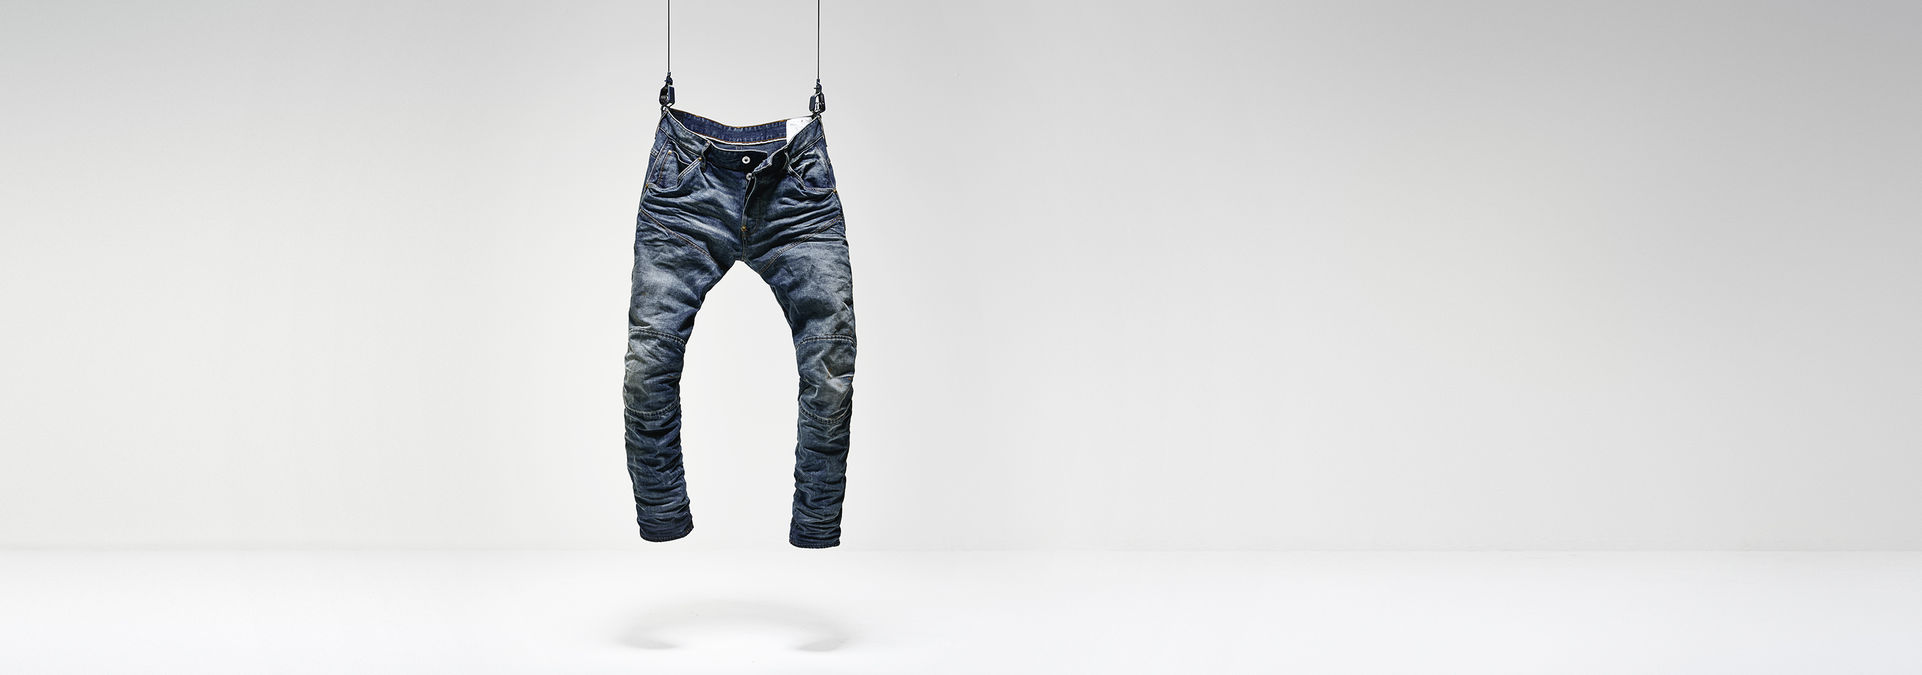 049323c2506 G-Star RAW® Raw Essentials 5620 G-Star Elwood 3D Tapered Jeans Dark ...